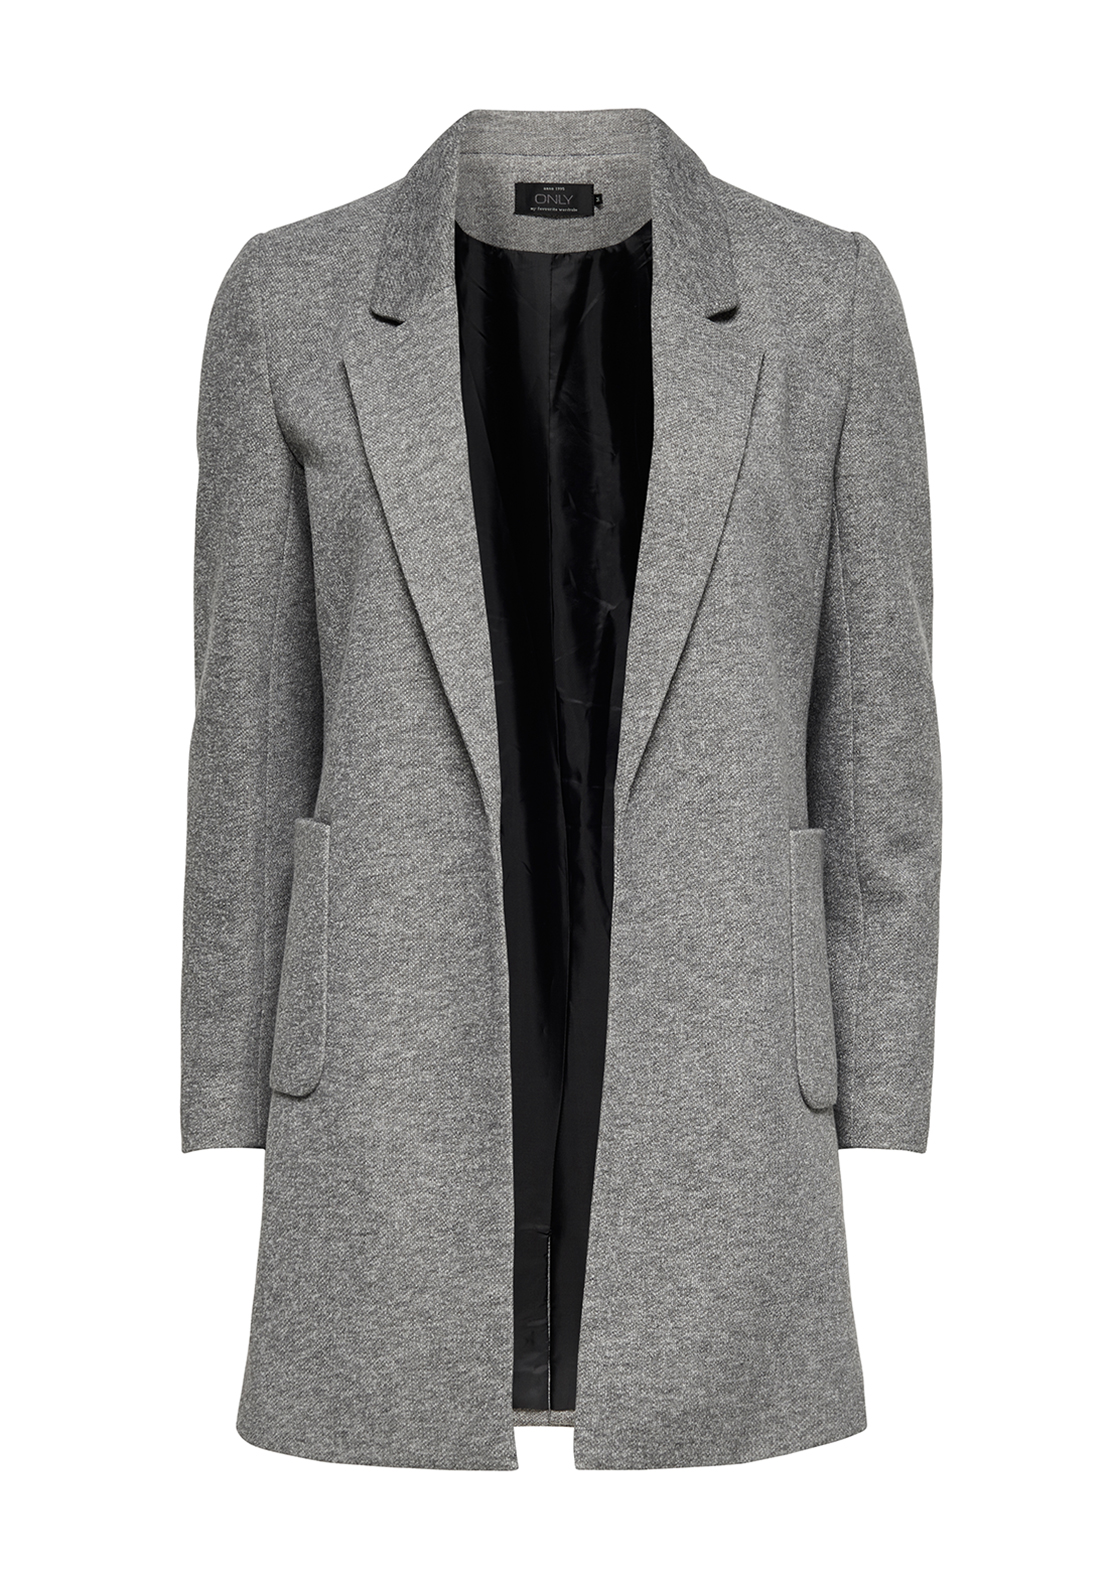 Only Baker Long Blazer Jacket, Light Grey Melange